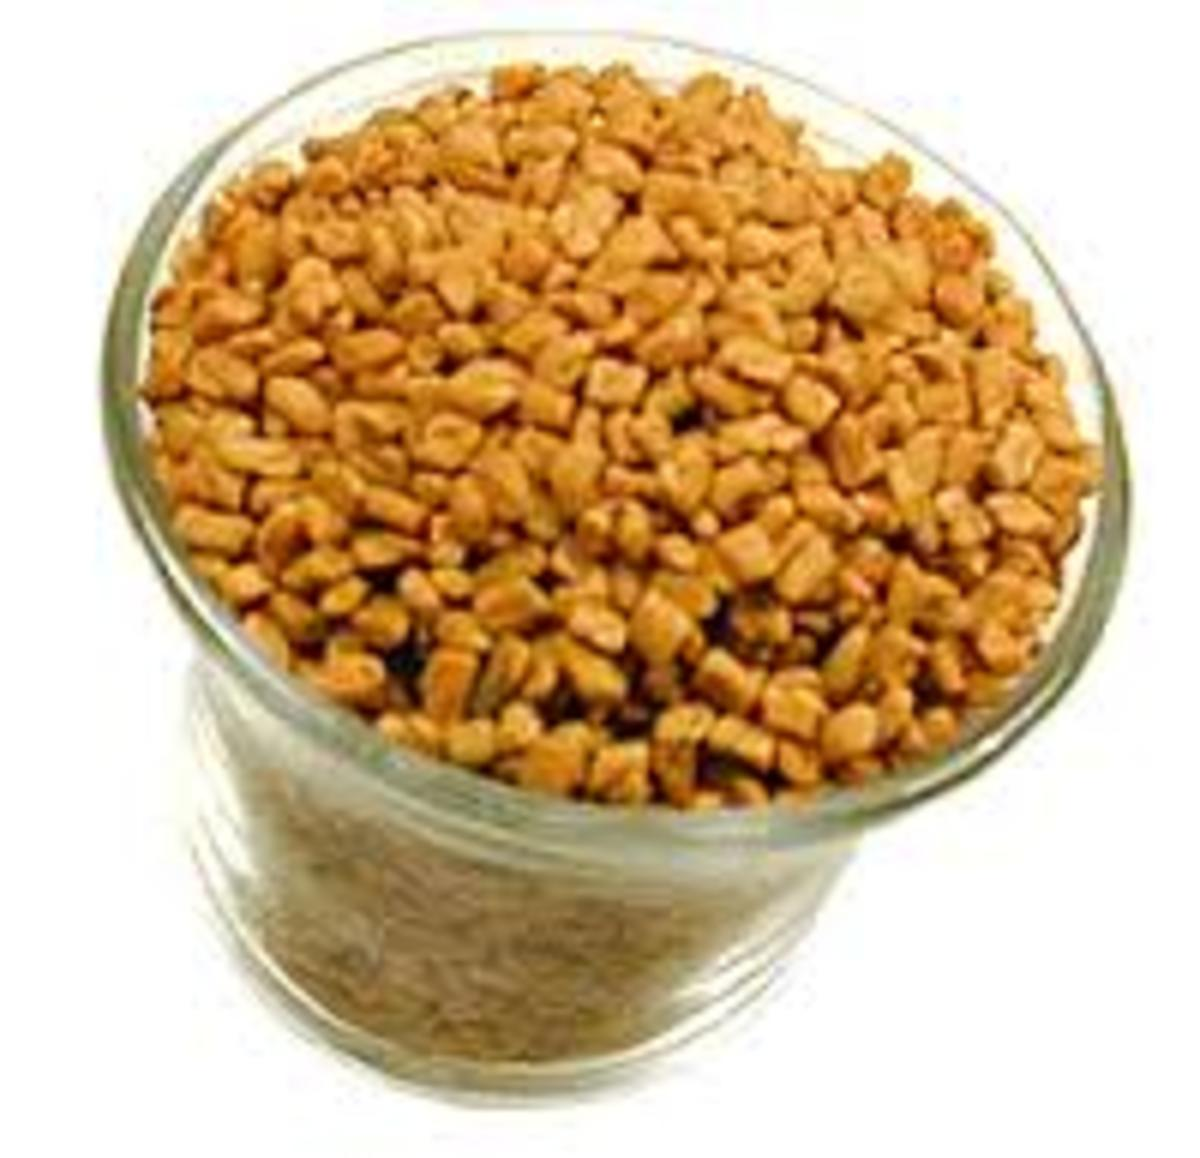 Fenugreek brings shine to your hair naturally